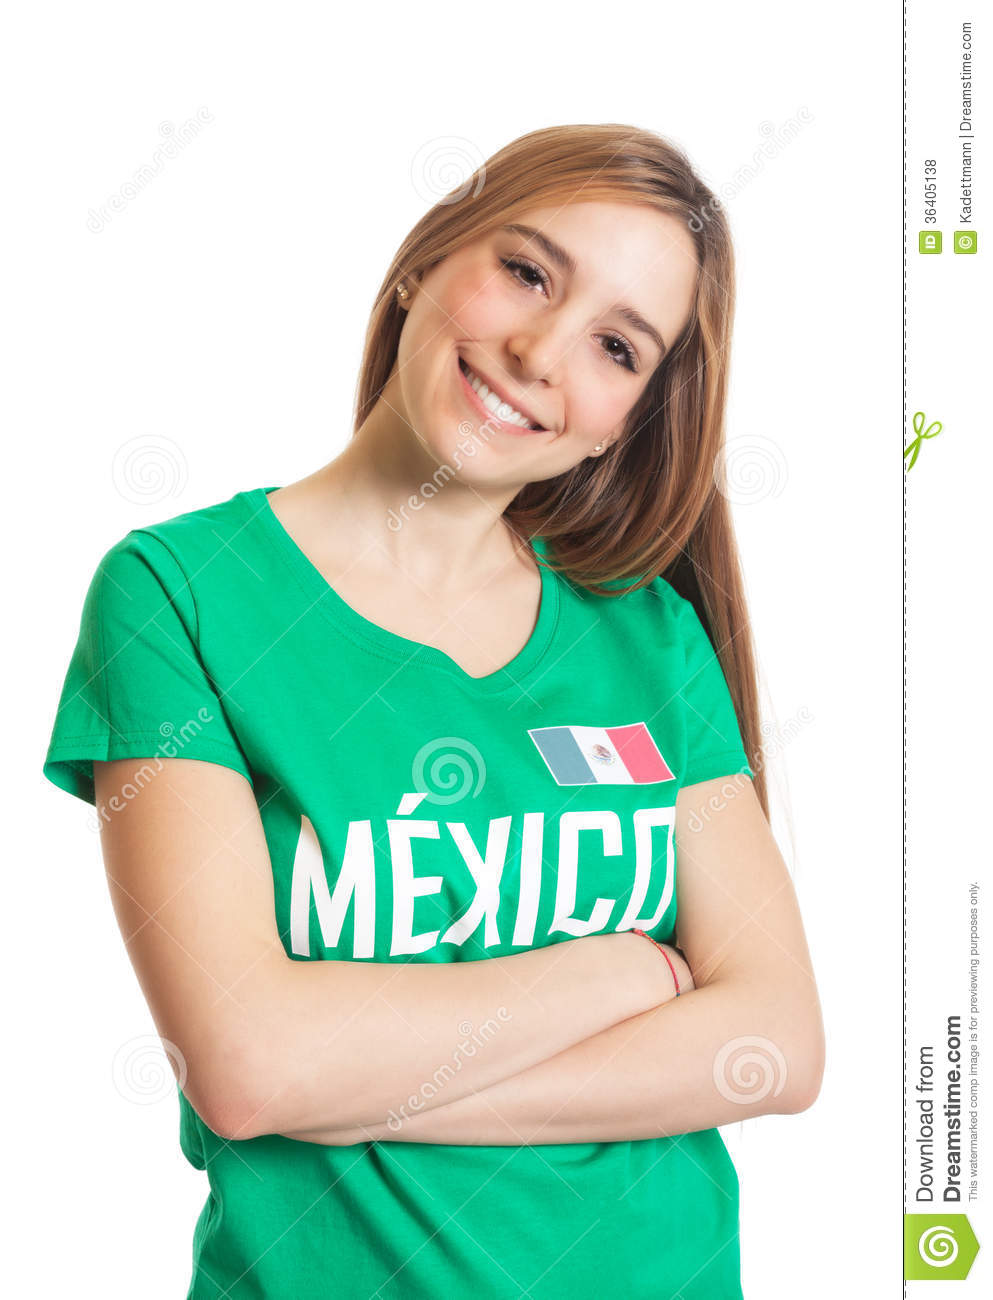 White girl dating a mexican